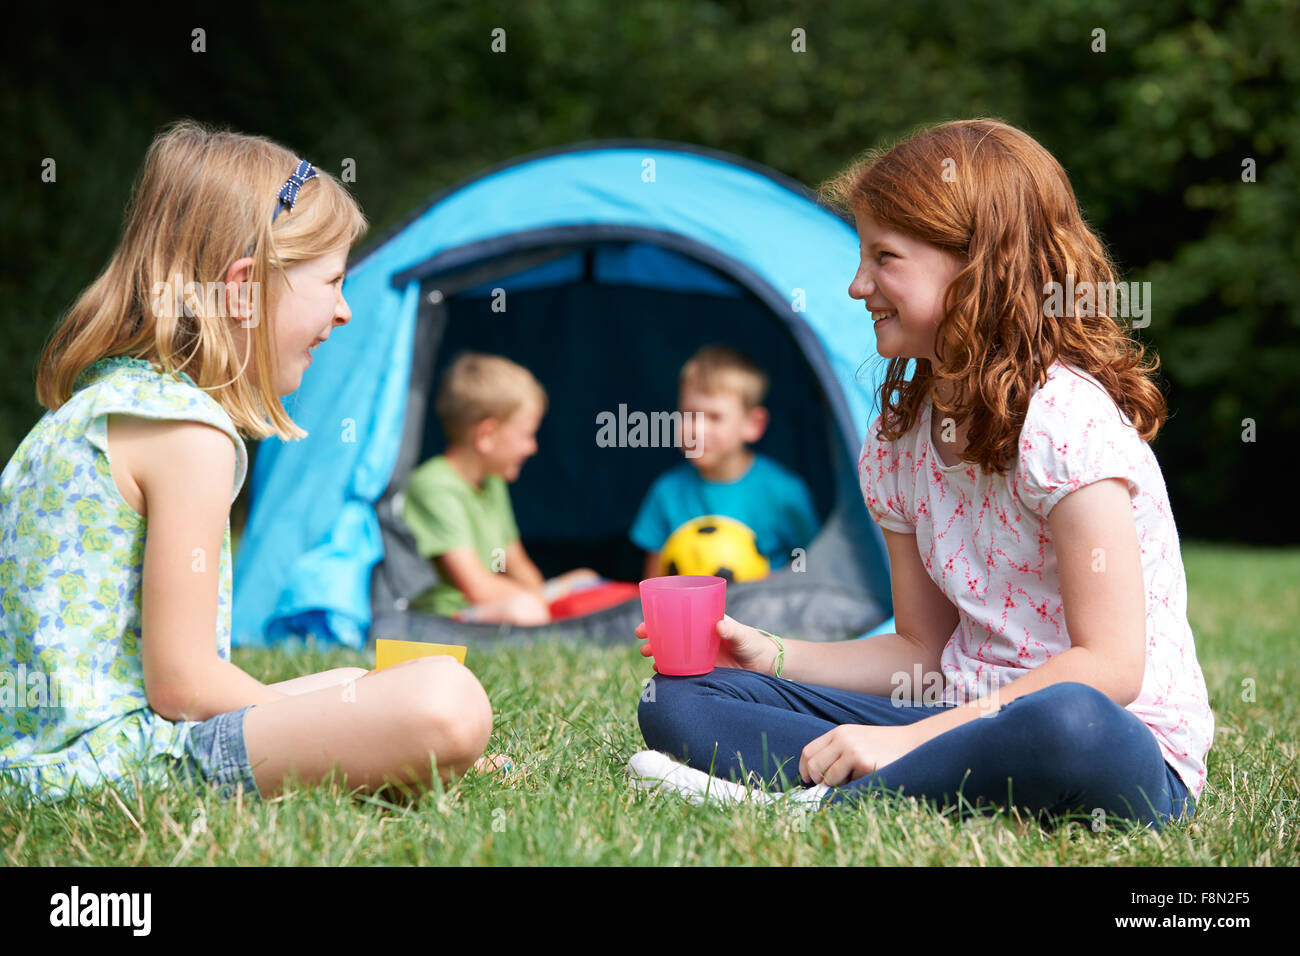 Two Girls Chatting Together On Camping Trip - Stock Image